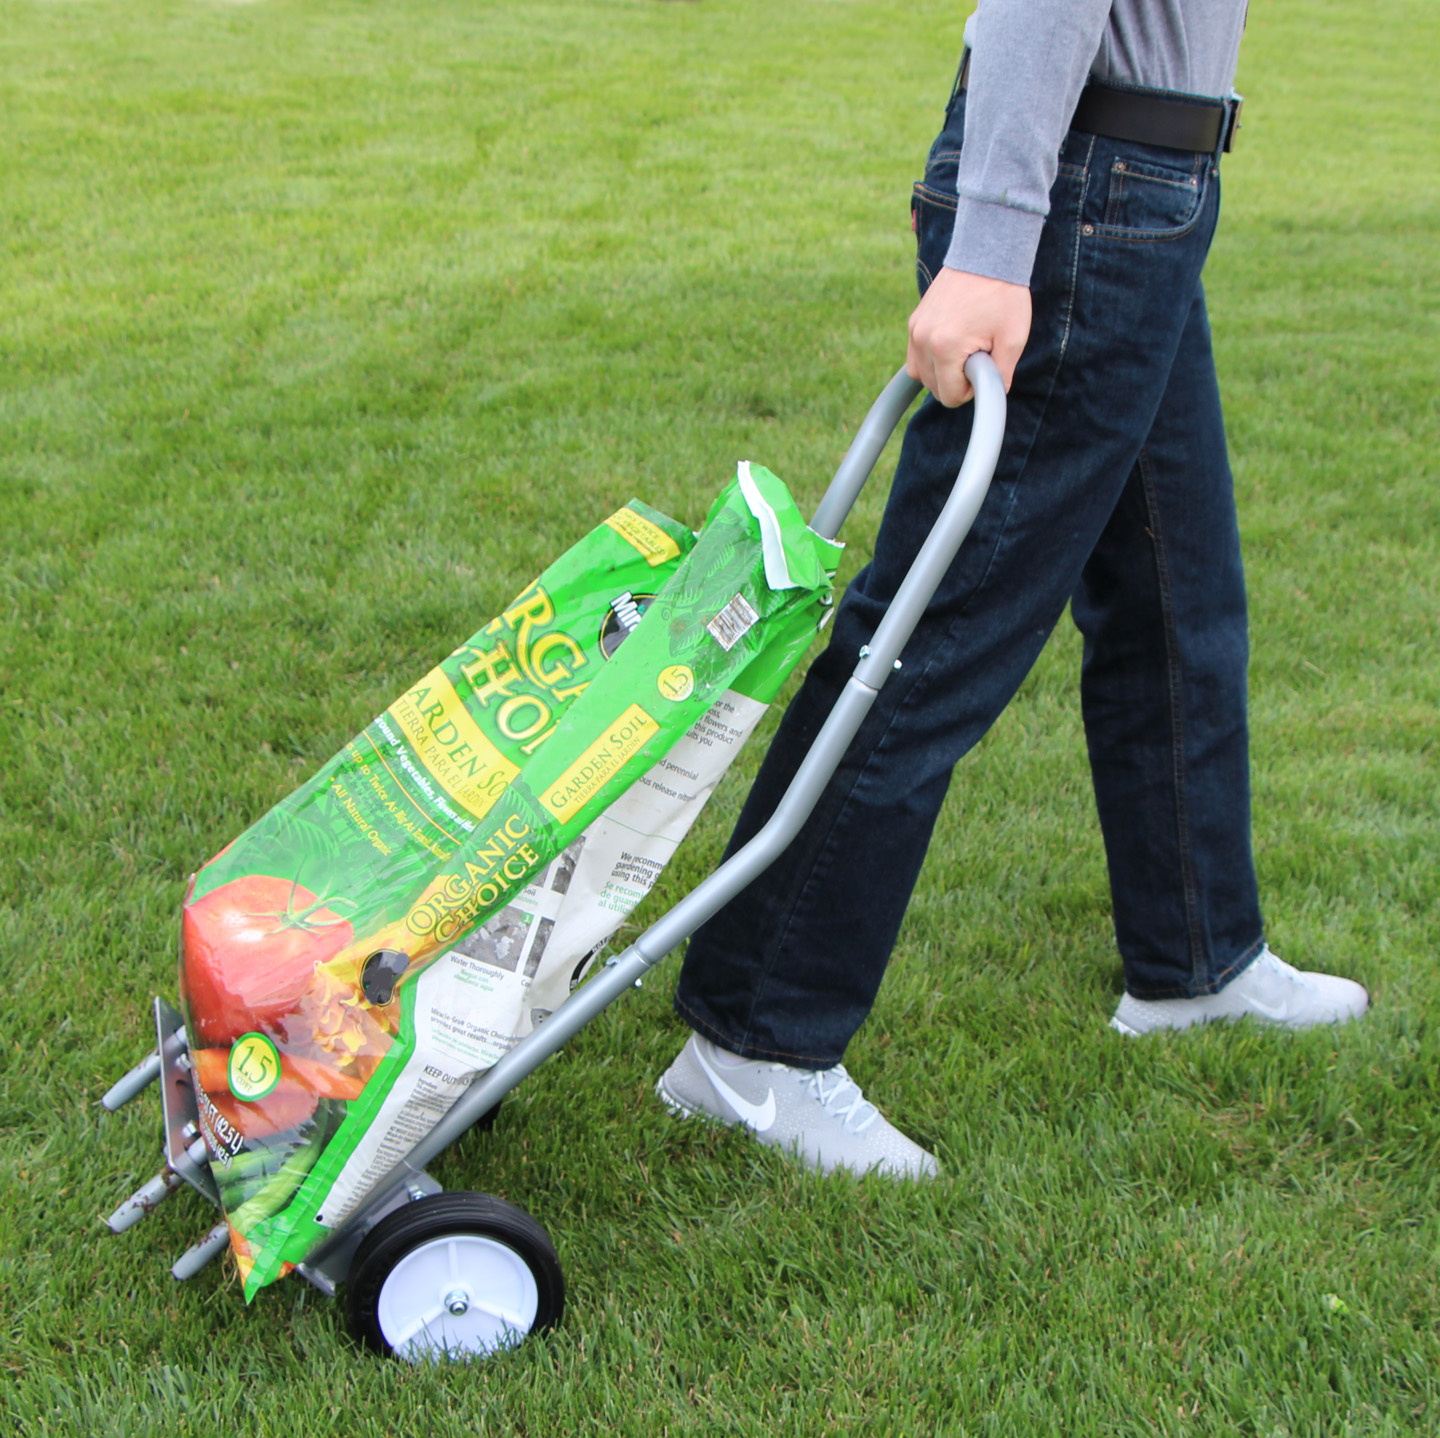 Grass Aerator Step N Tilt Core Lawn Aerator 2 The Easy Way To Core Aerate